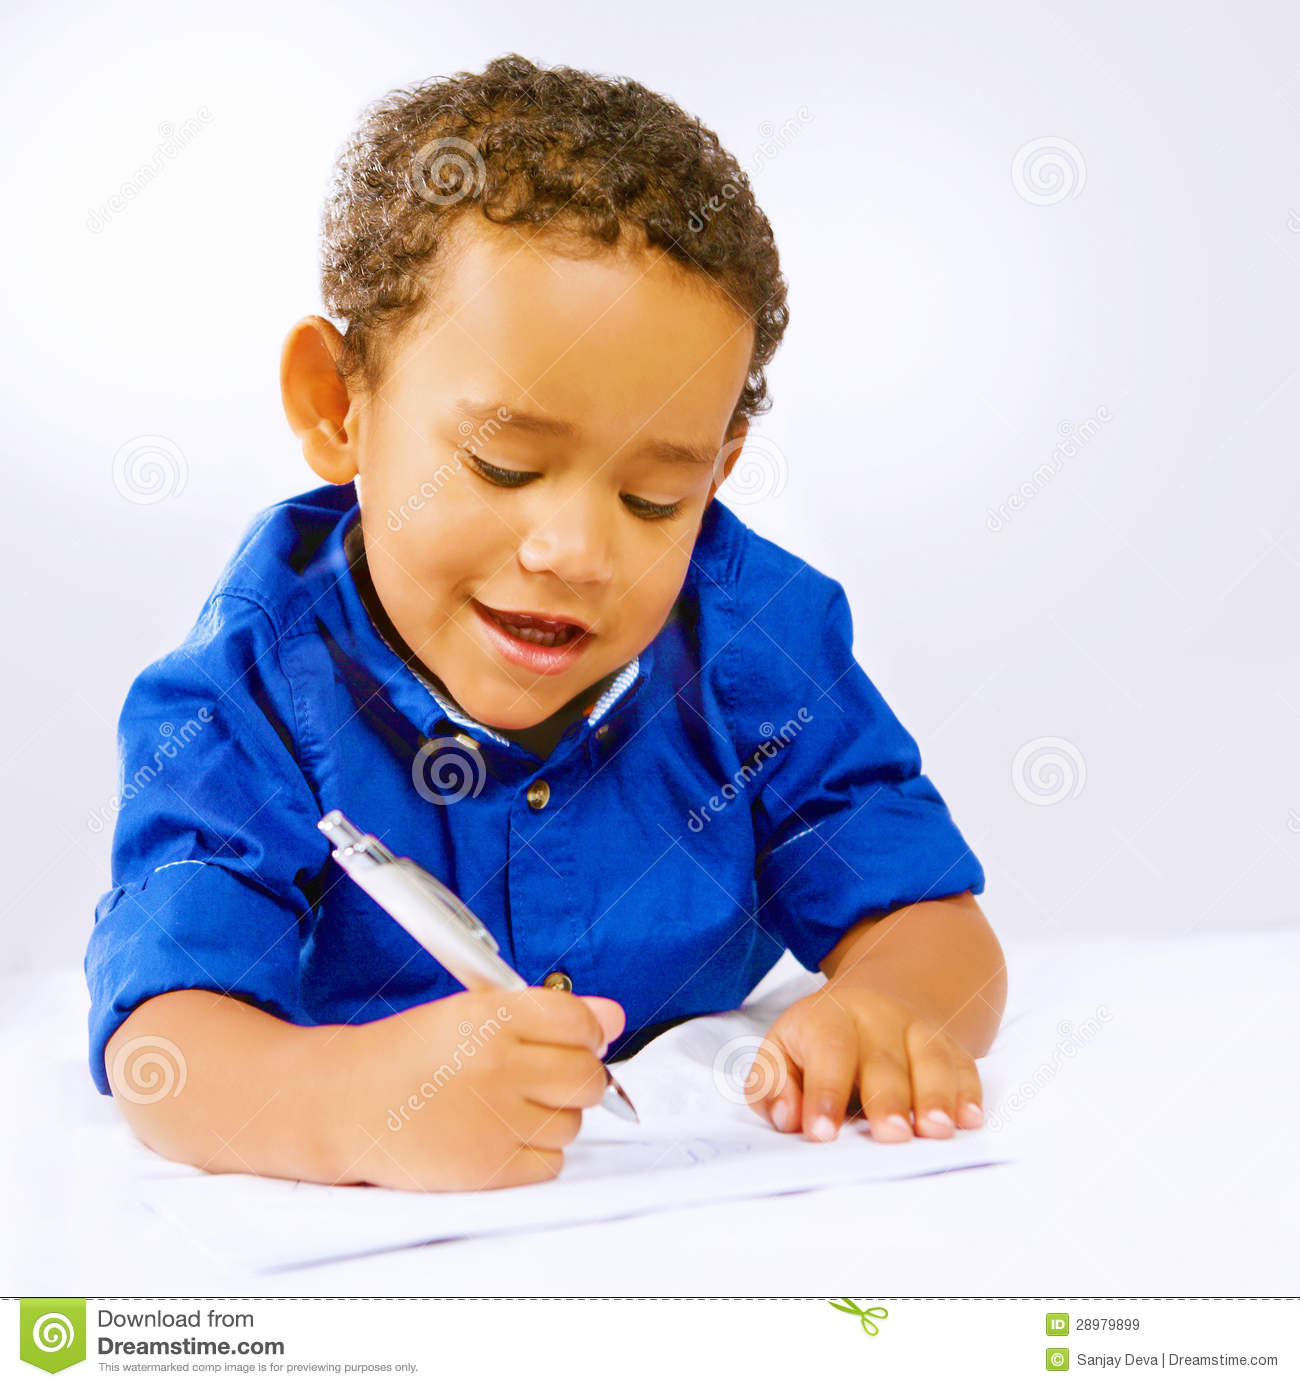 Kid Writing Royalty Free Stock Images - Image: 28979899